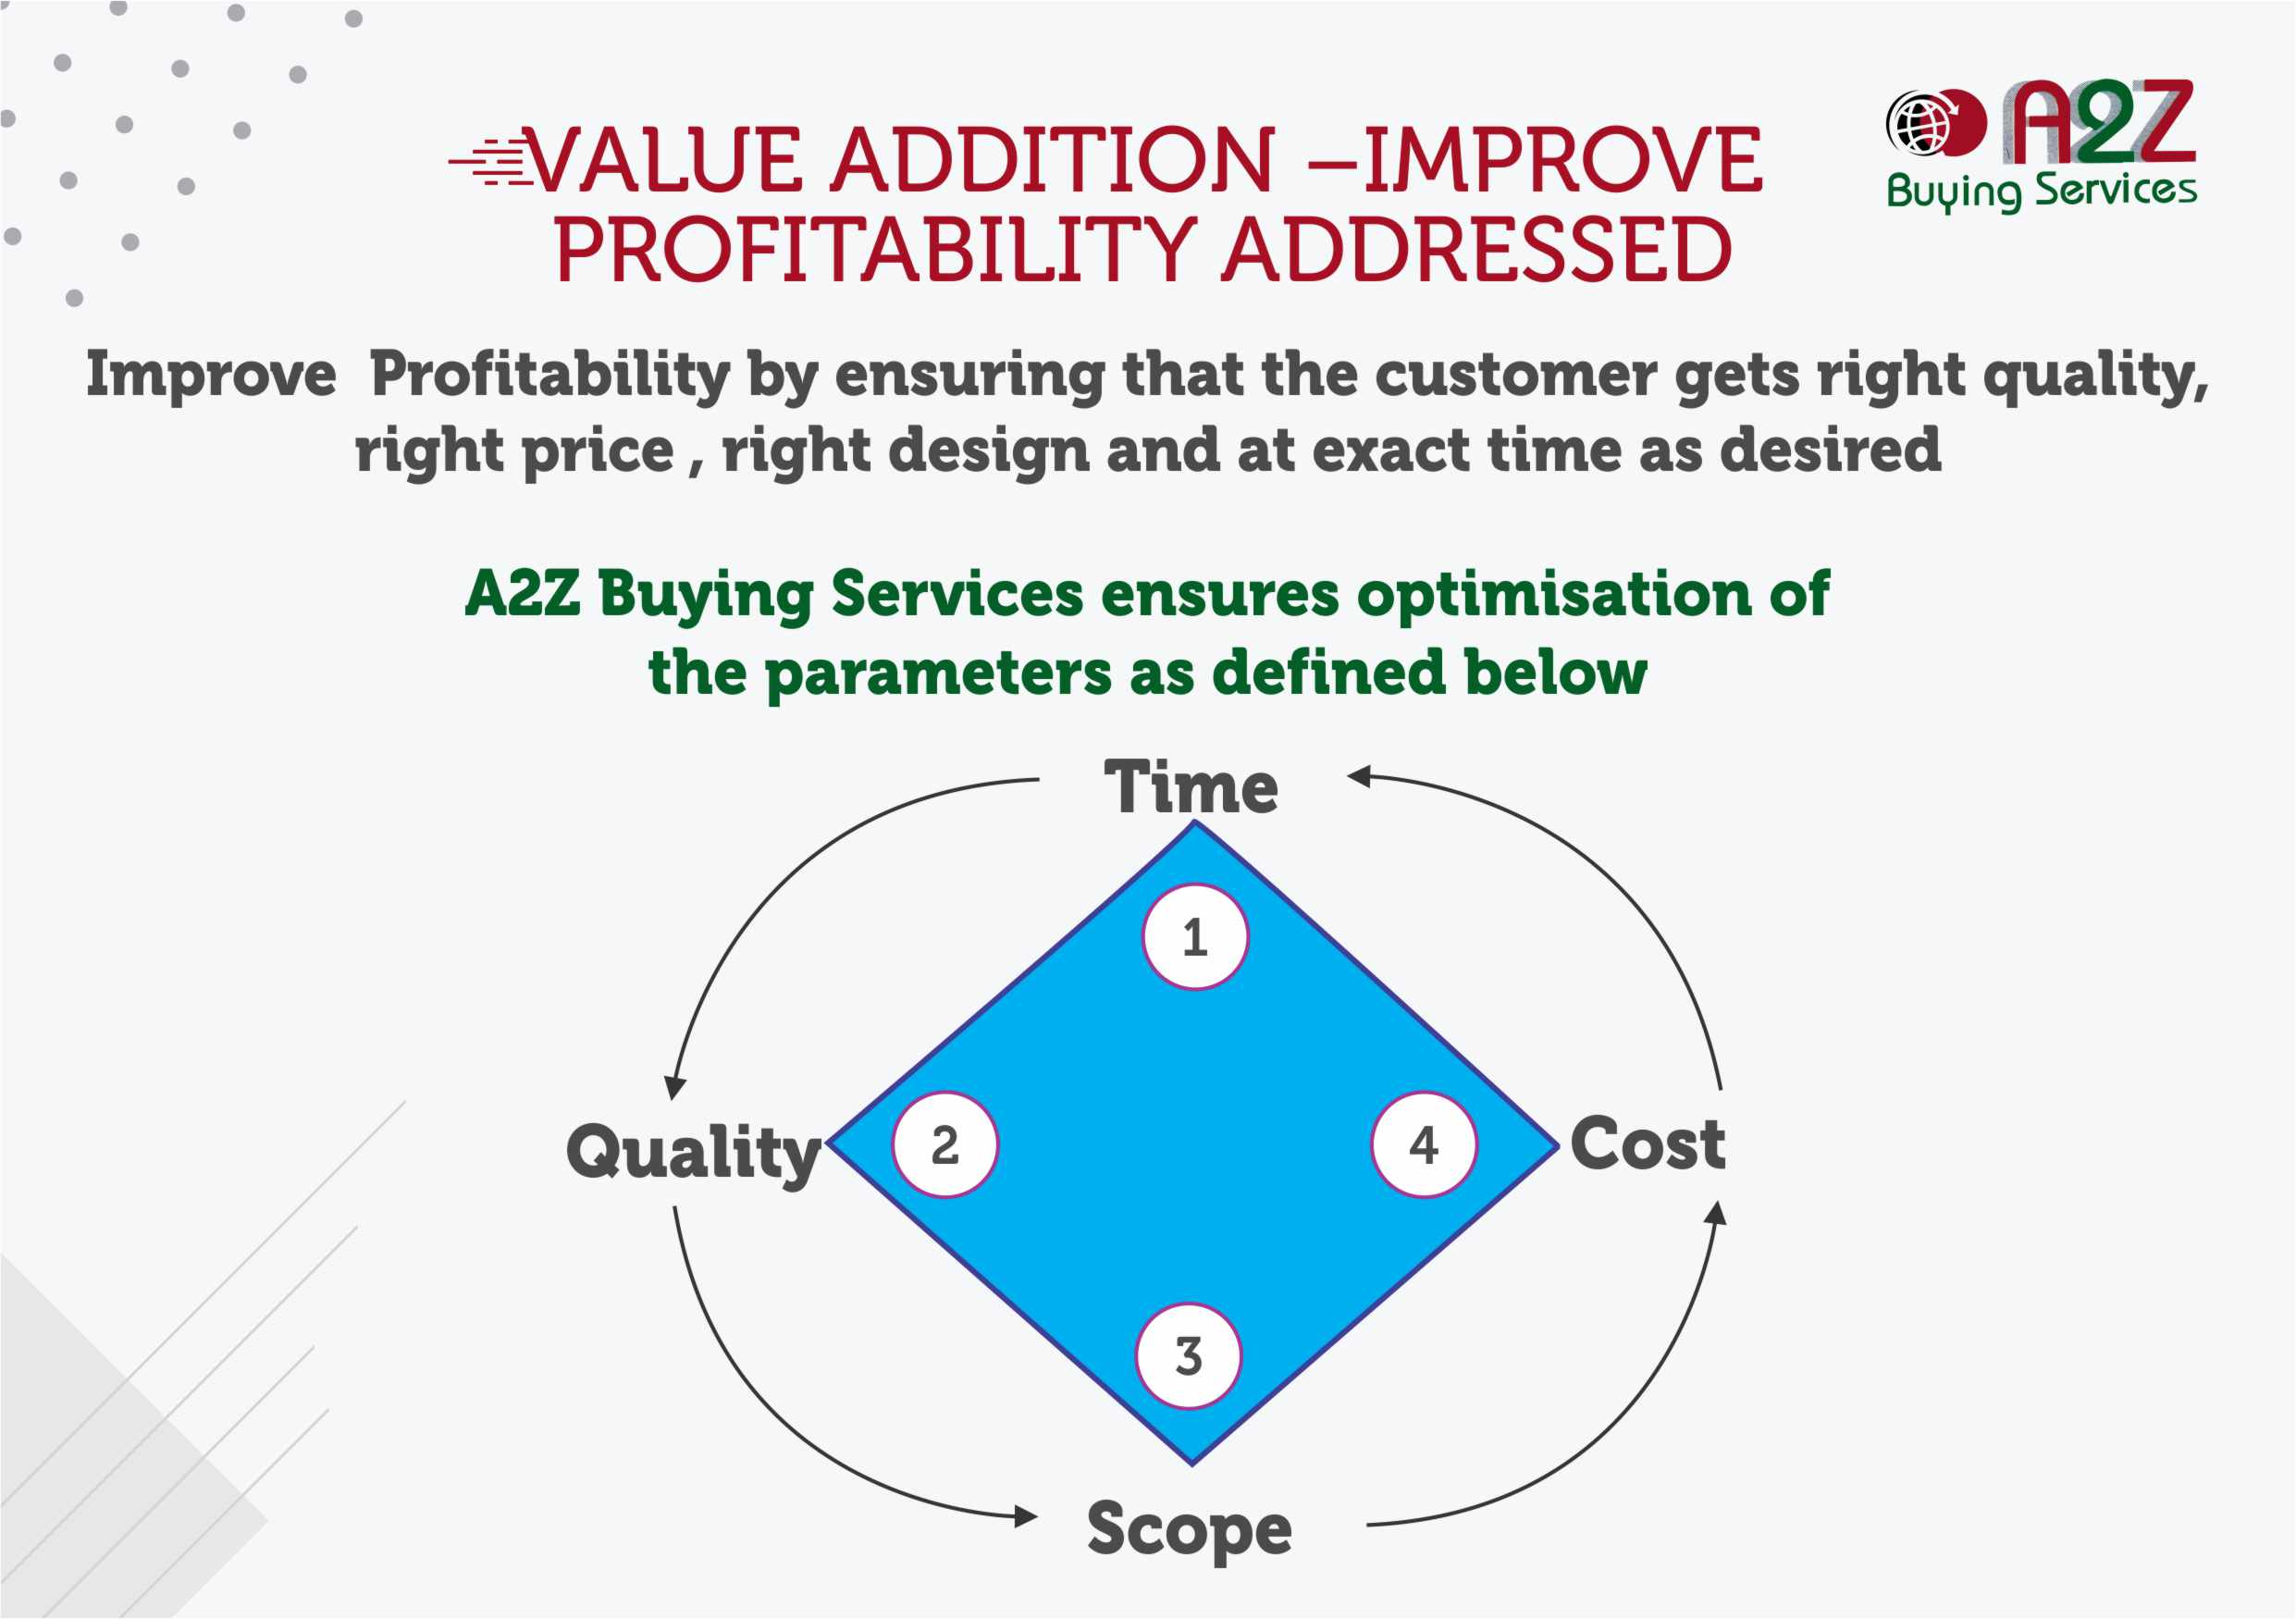 Value Addition | A2Z Buying Services